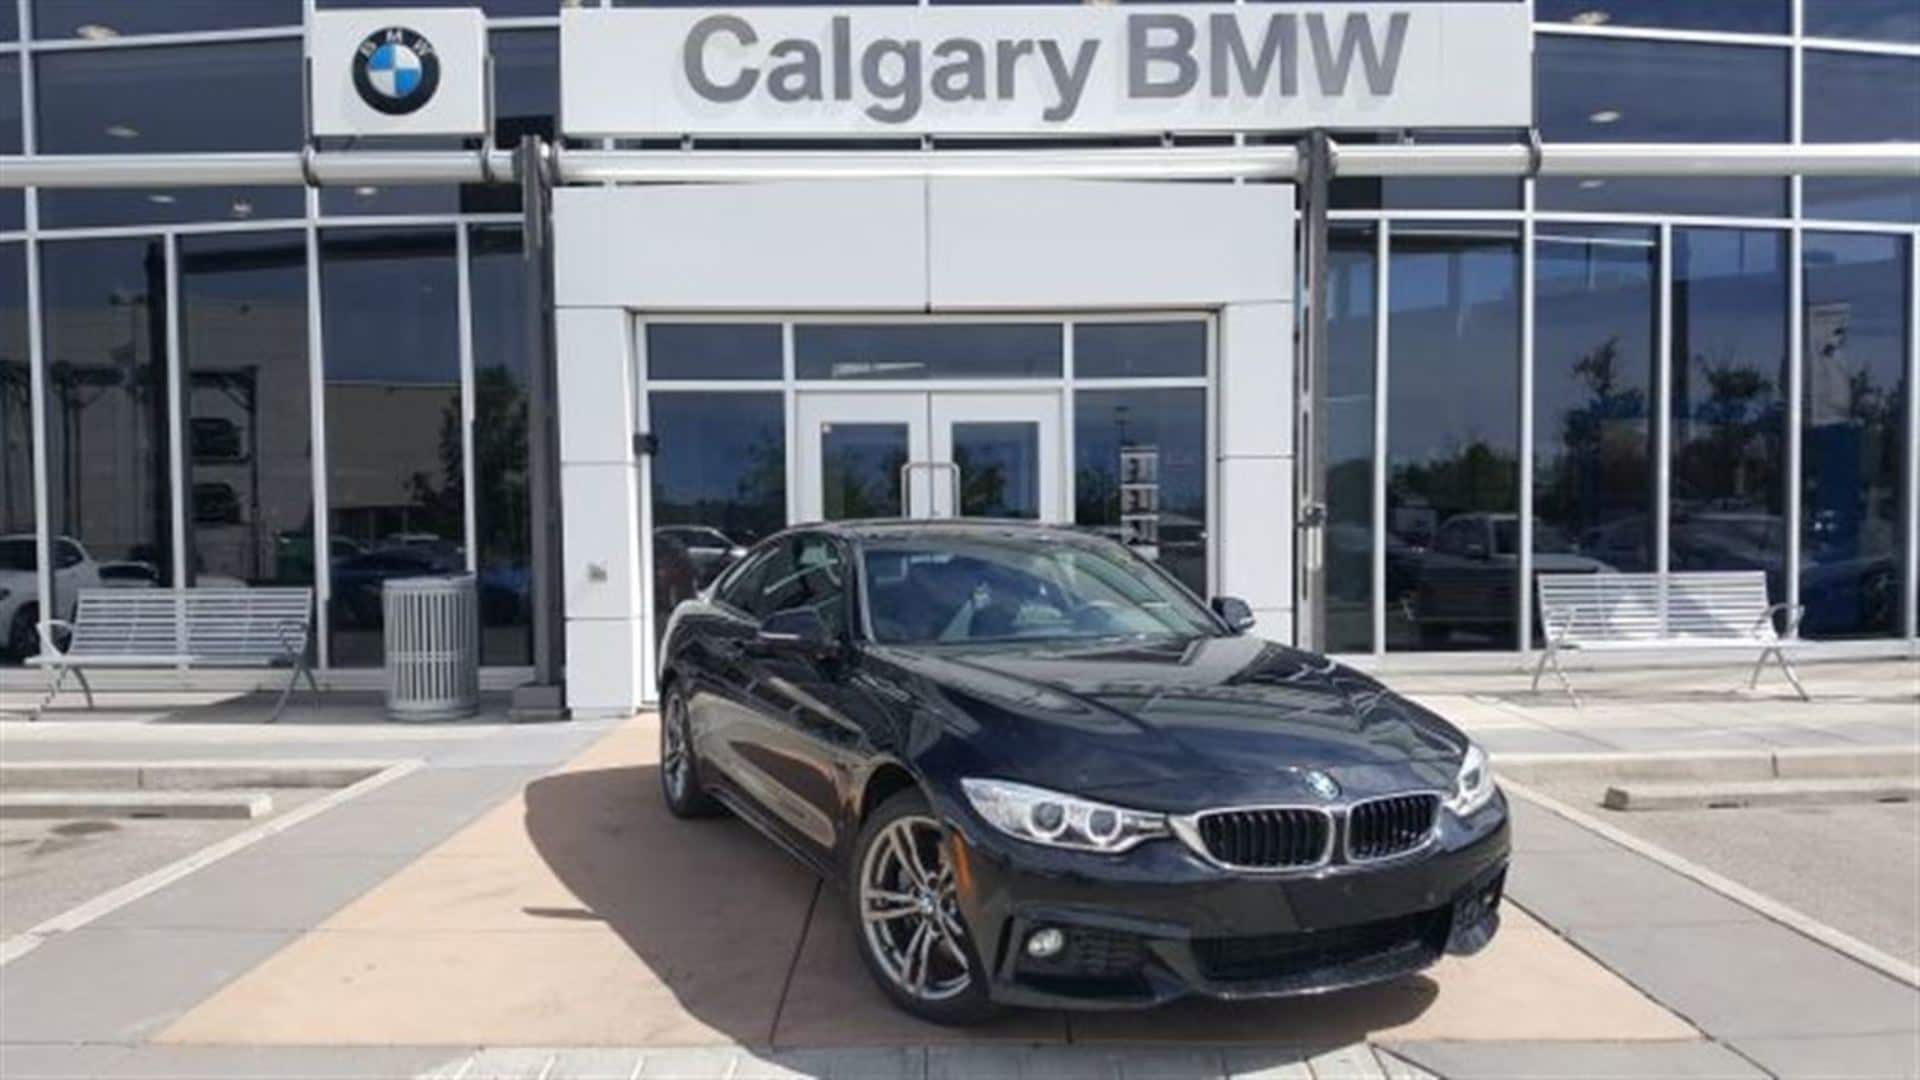 2017 BMW 430i Xdrive Coupe Amazing Value. Save Huge vs new. Coupe